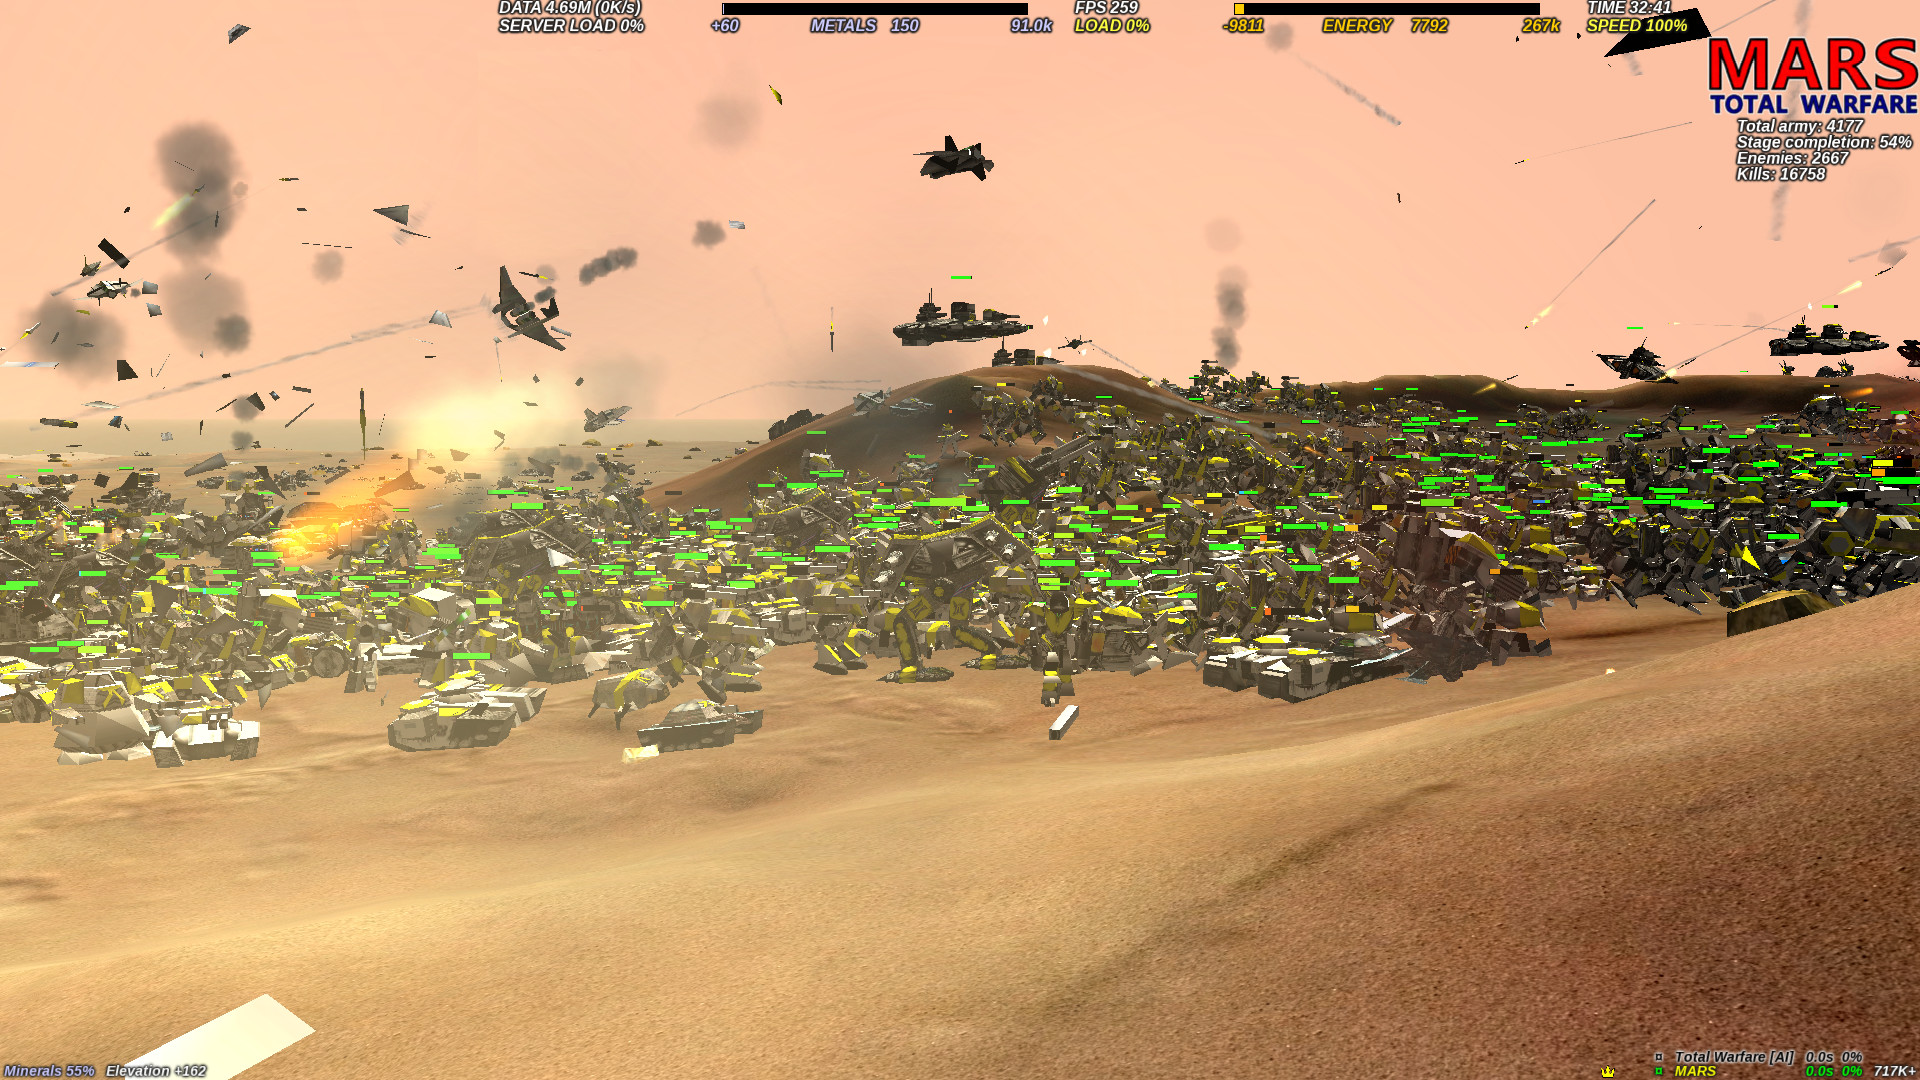 [MARS] Total Warfare - Annual Player upgrade (2019) screenshot